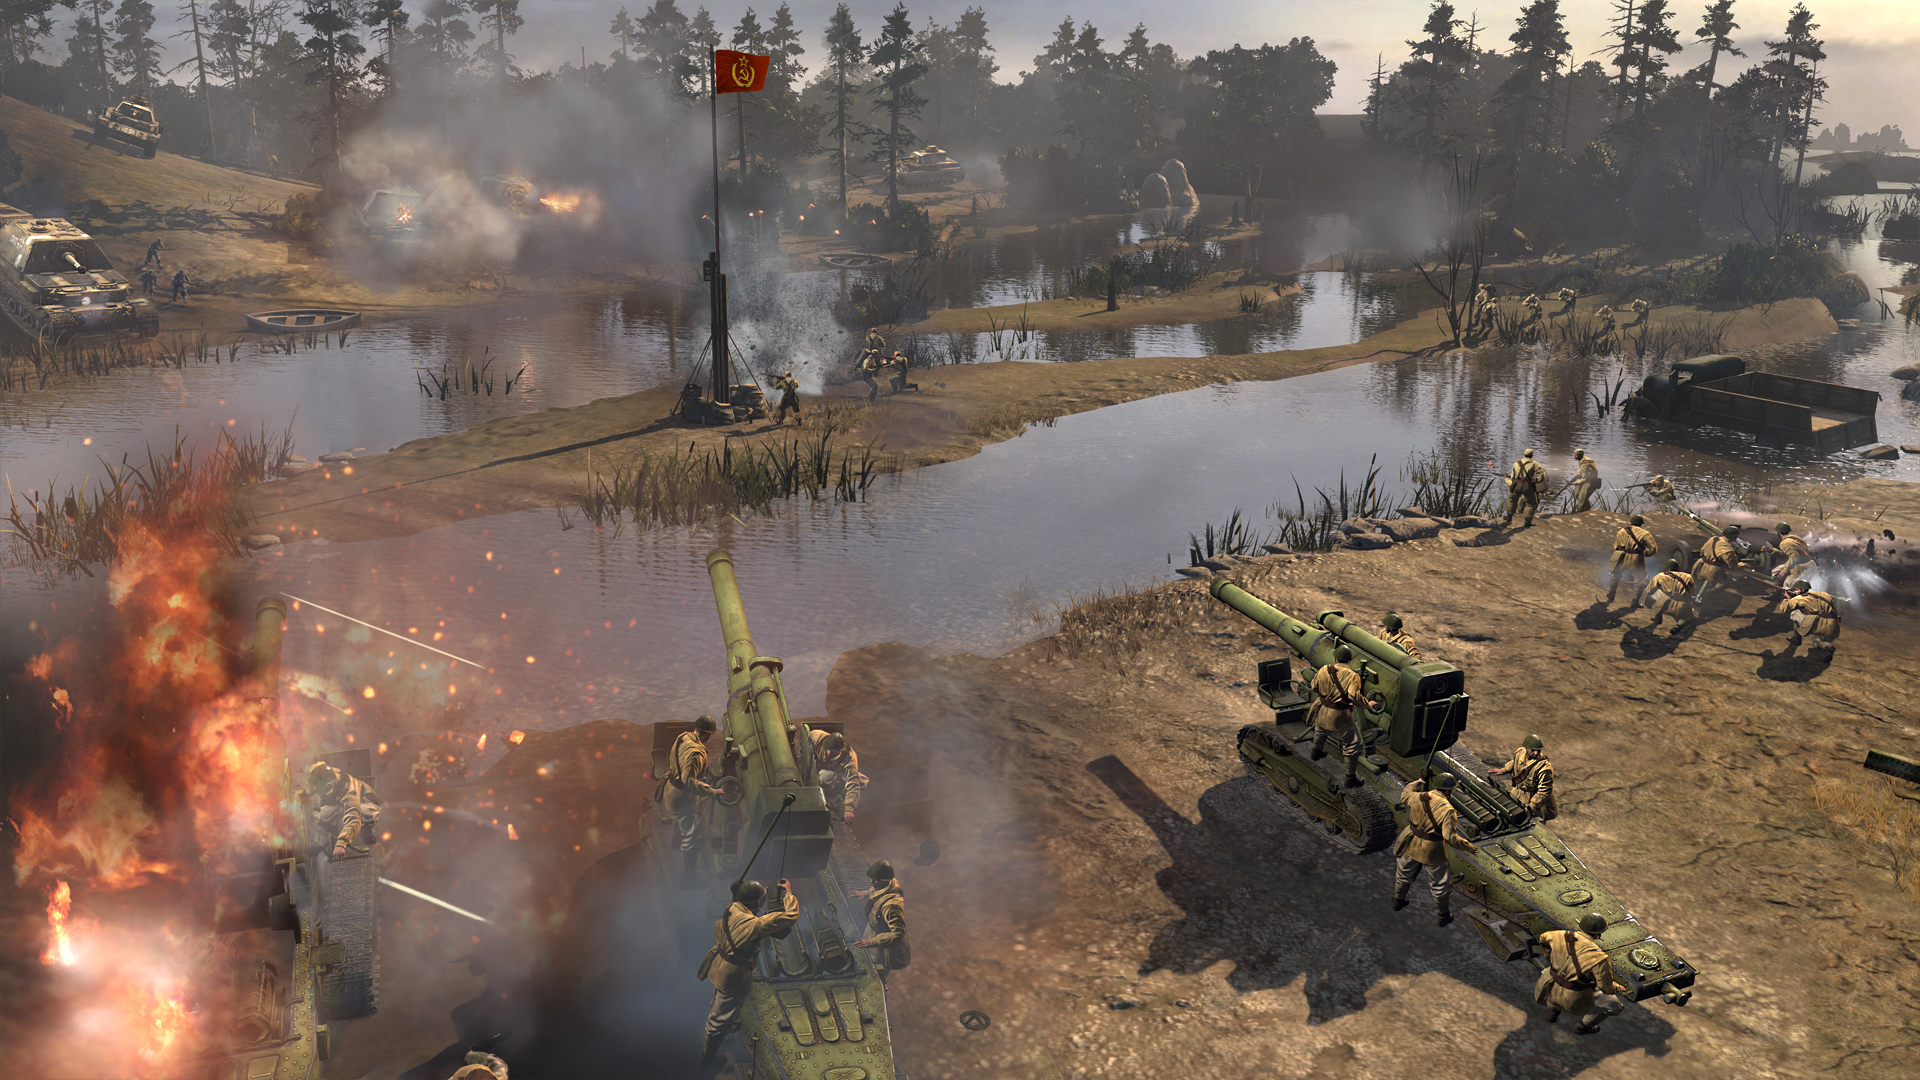 Company of Heroes 2 launches Turning Point free update November 12